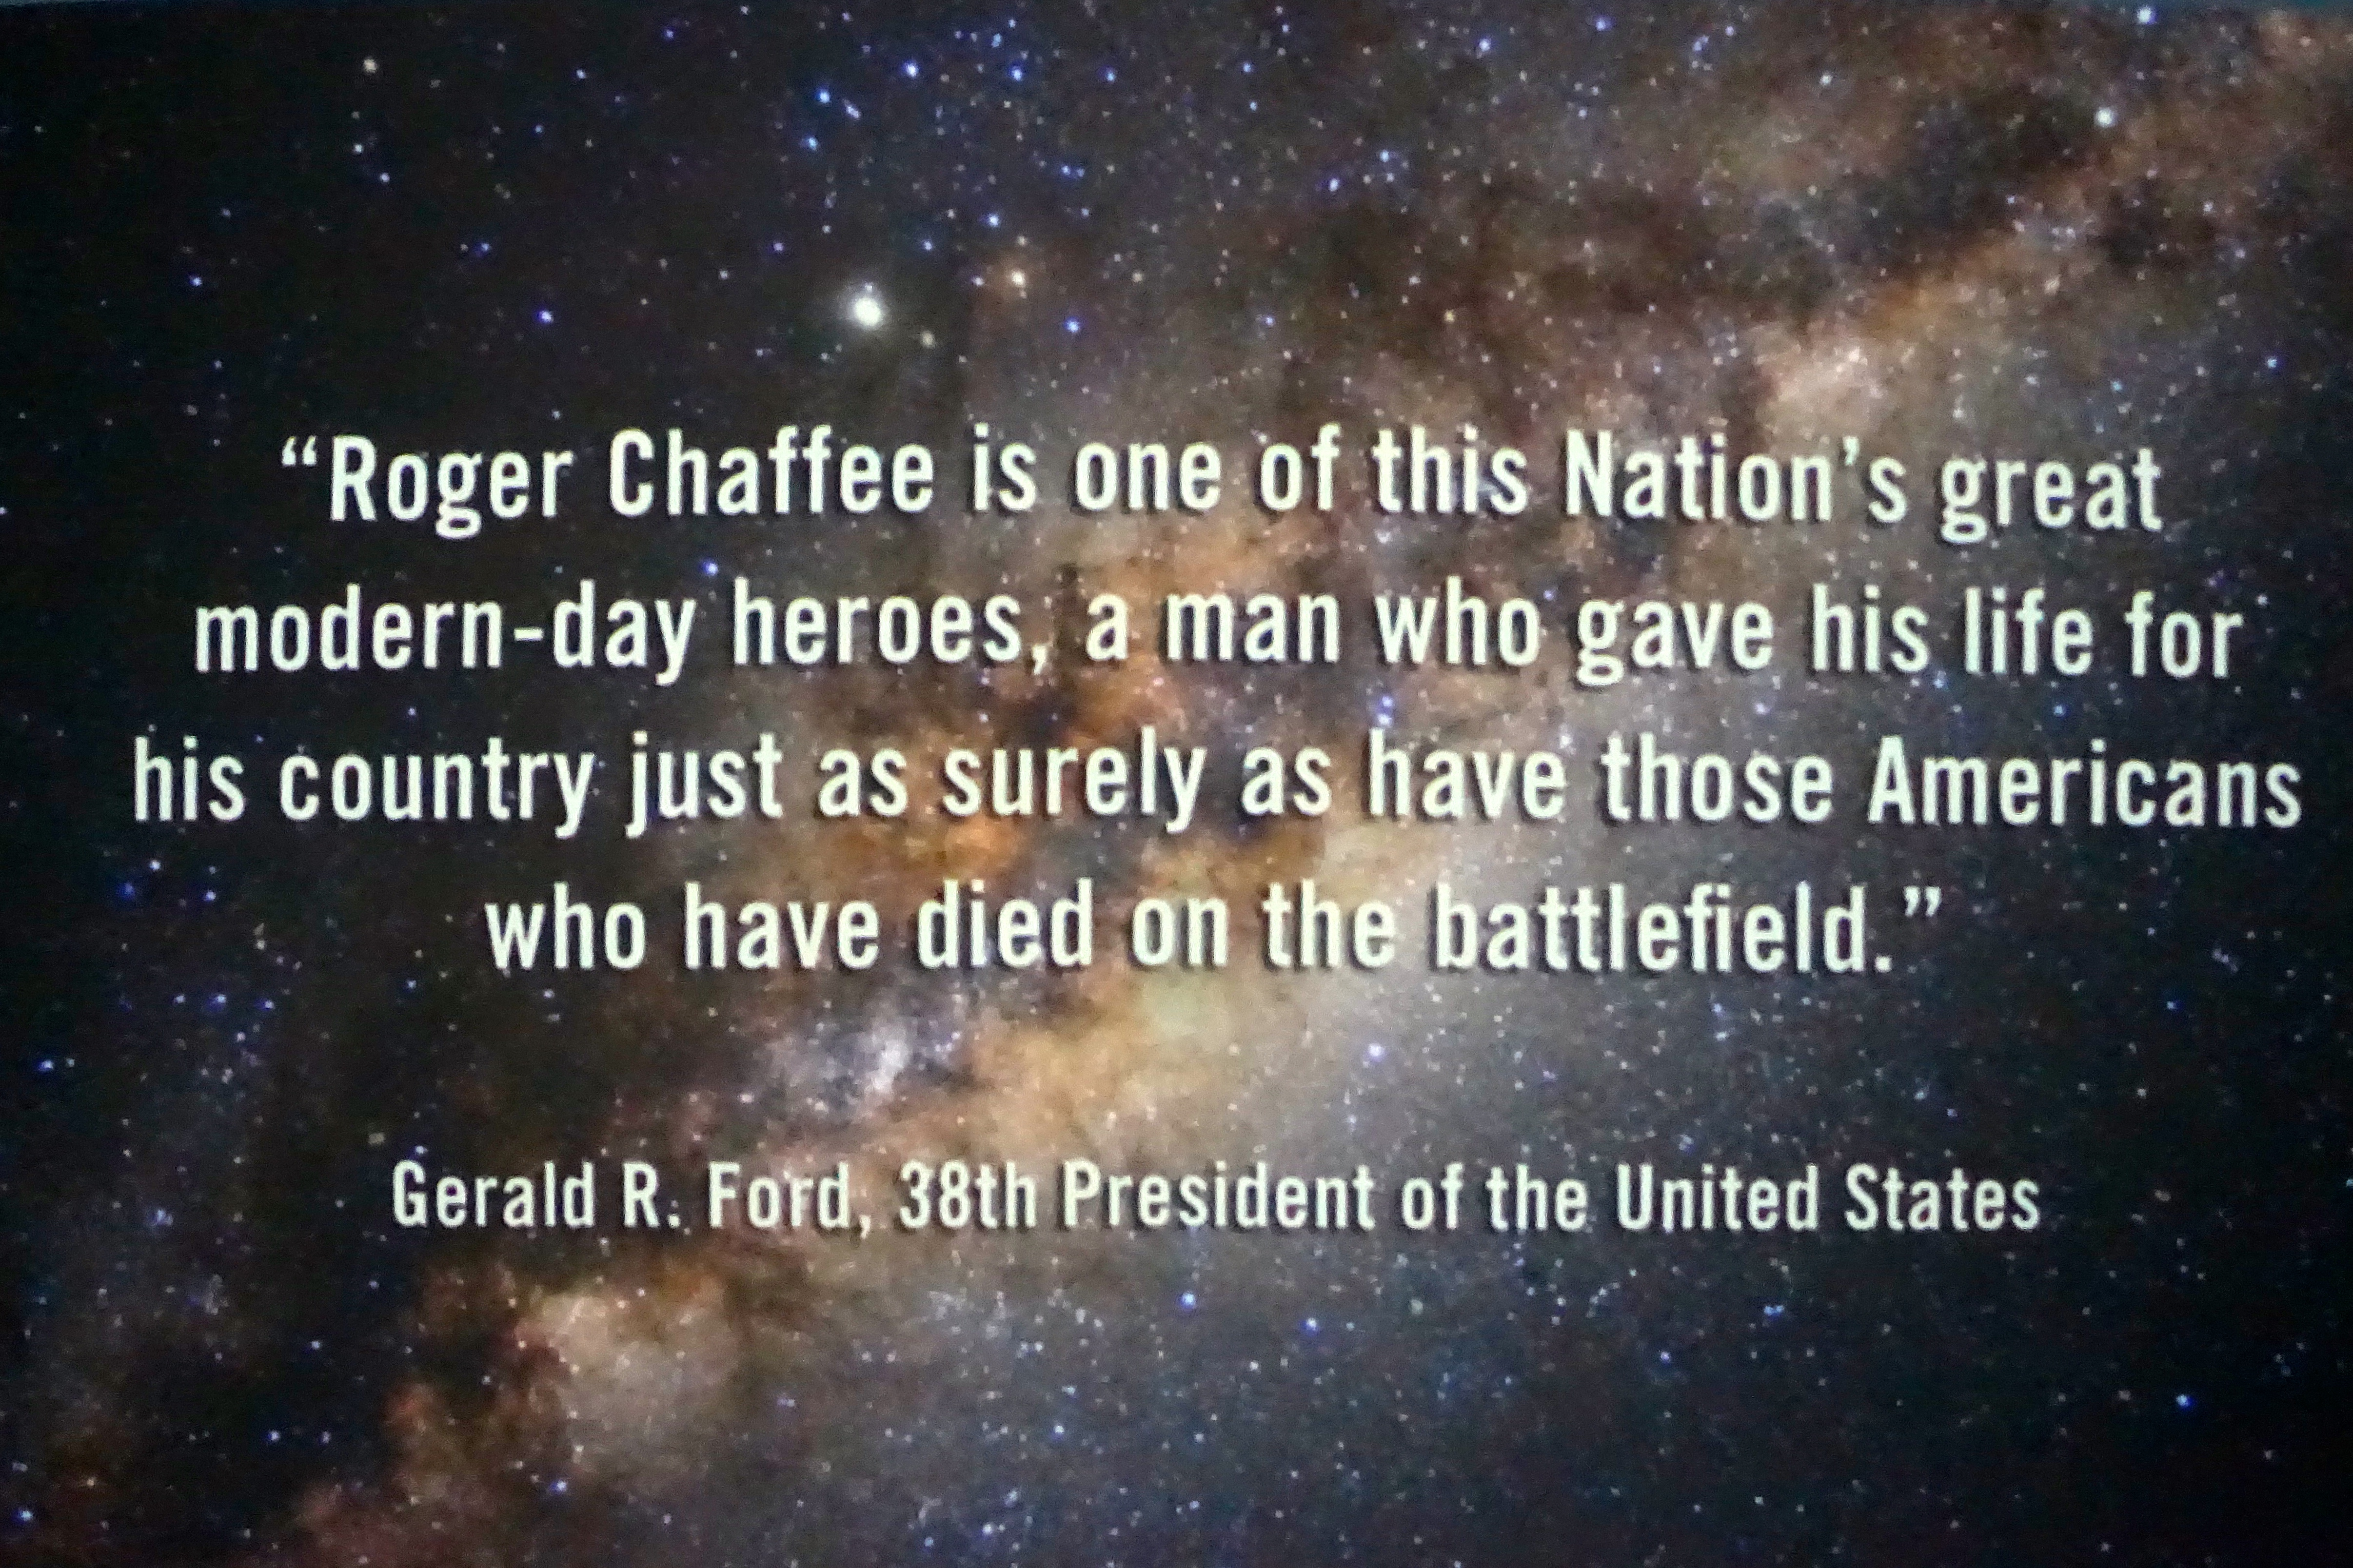 Roger Chaffee Planetarium quote by Gerald Ford